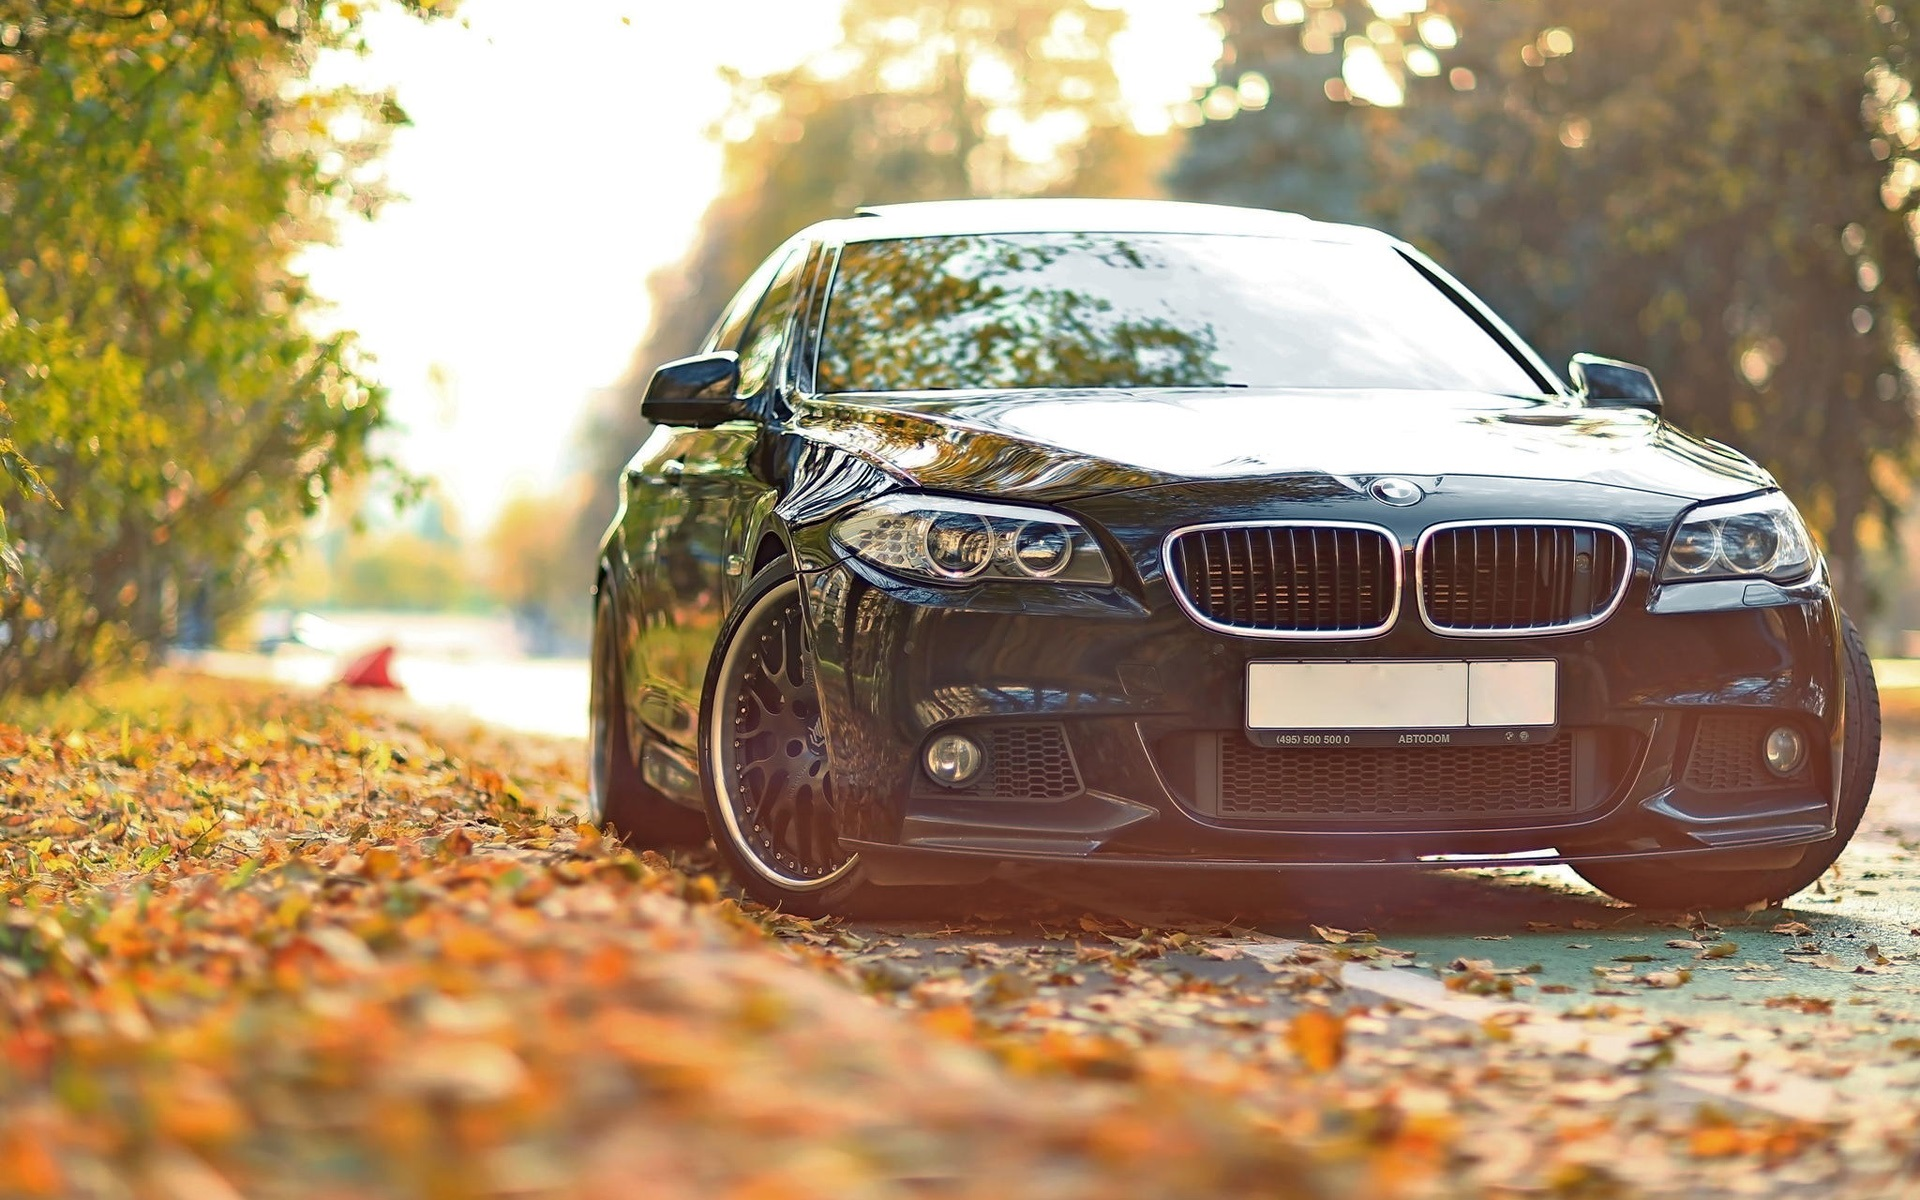 Bmw Car Wallpapers For Mobile Wallpapersimages Org